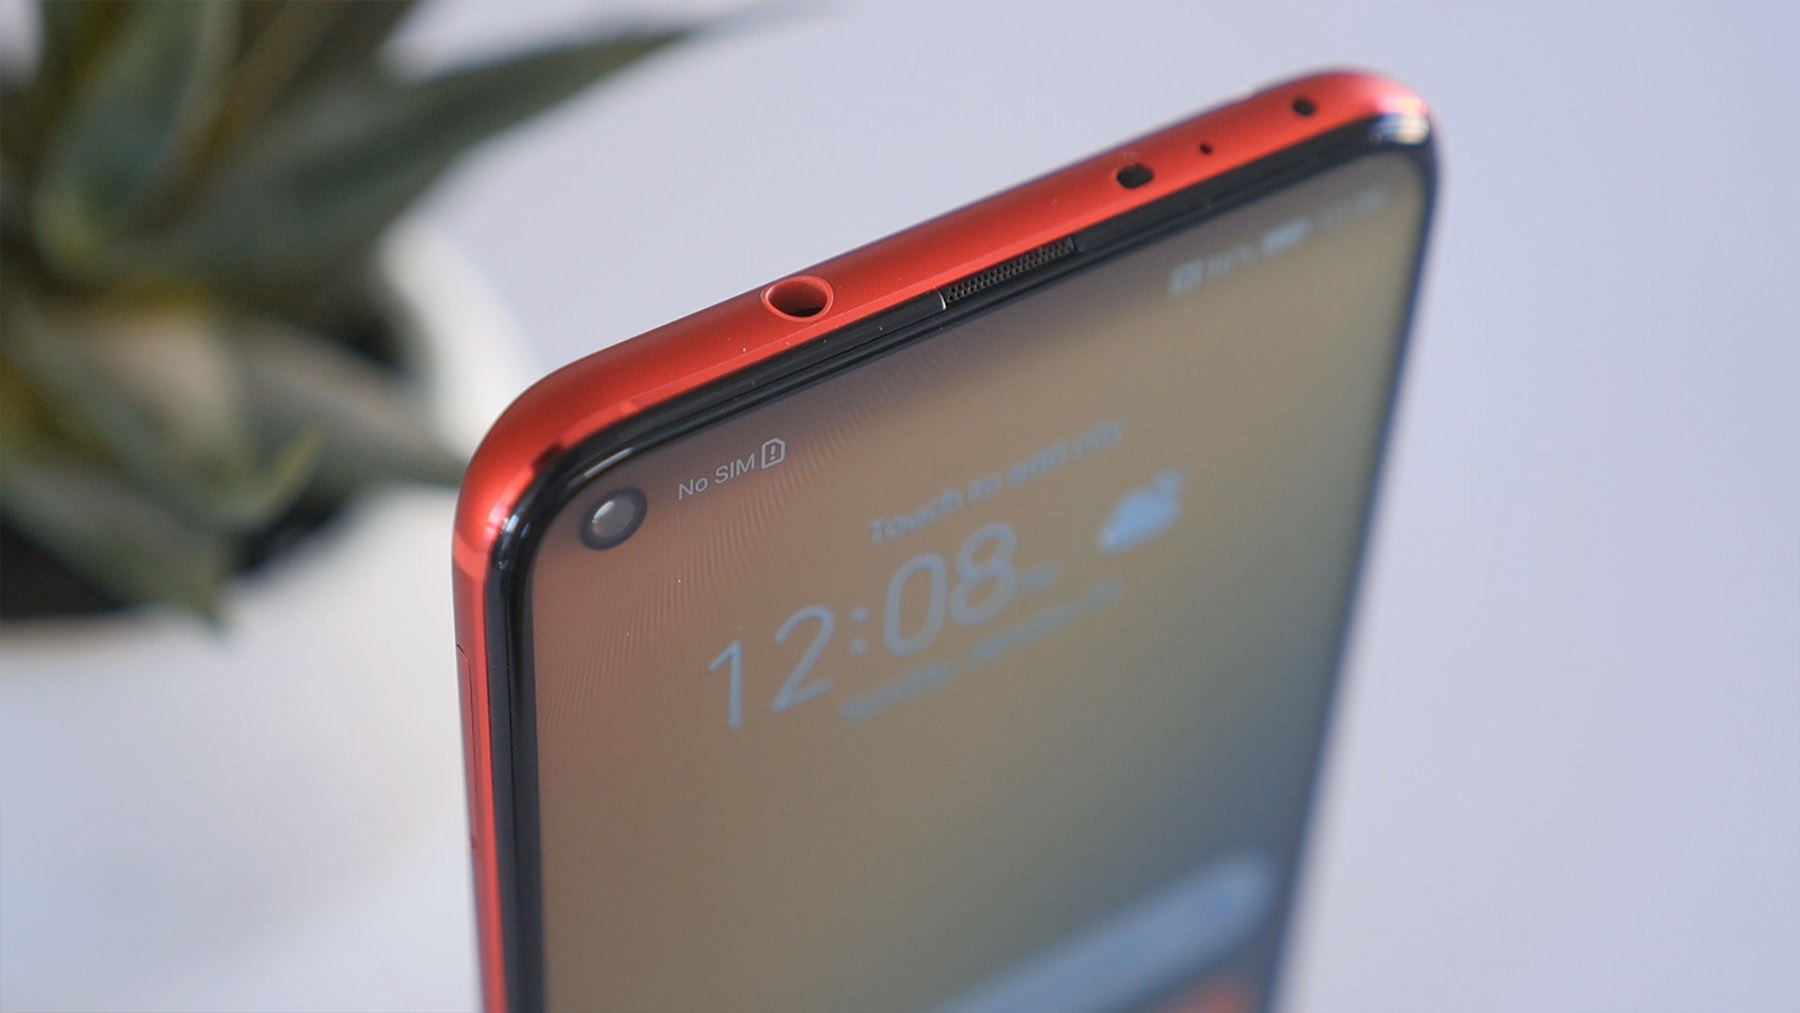 If Huawei can succeed without the Play Store, Android as we know it